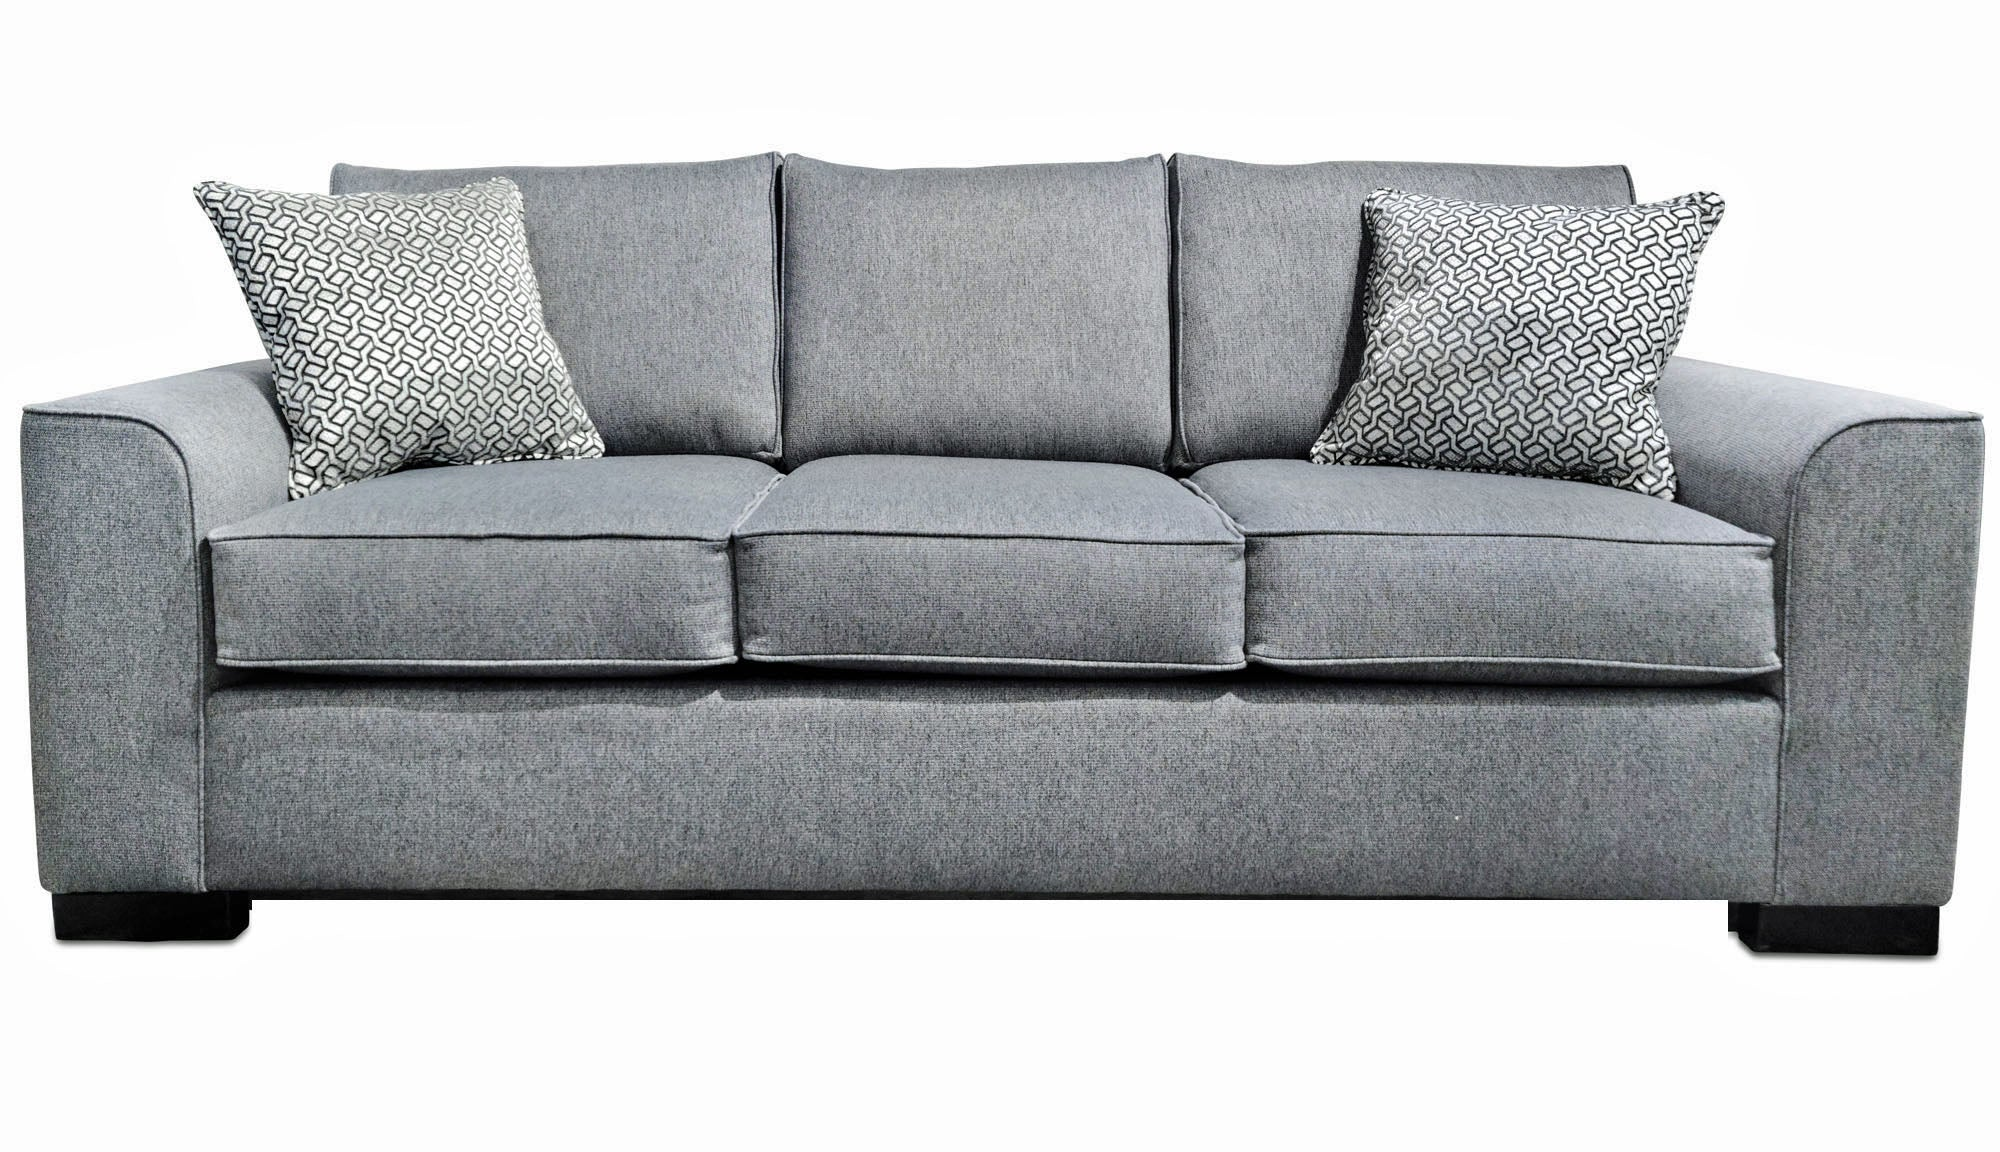 Loft Sofa - MJM Furniture